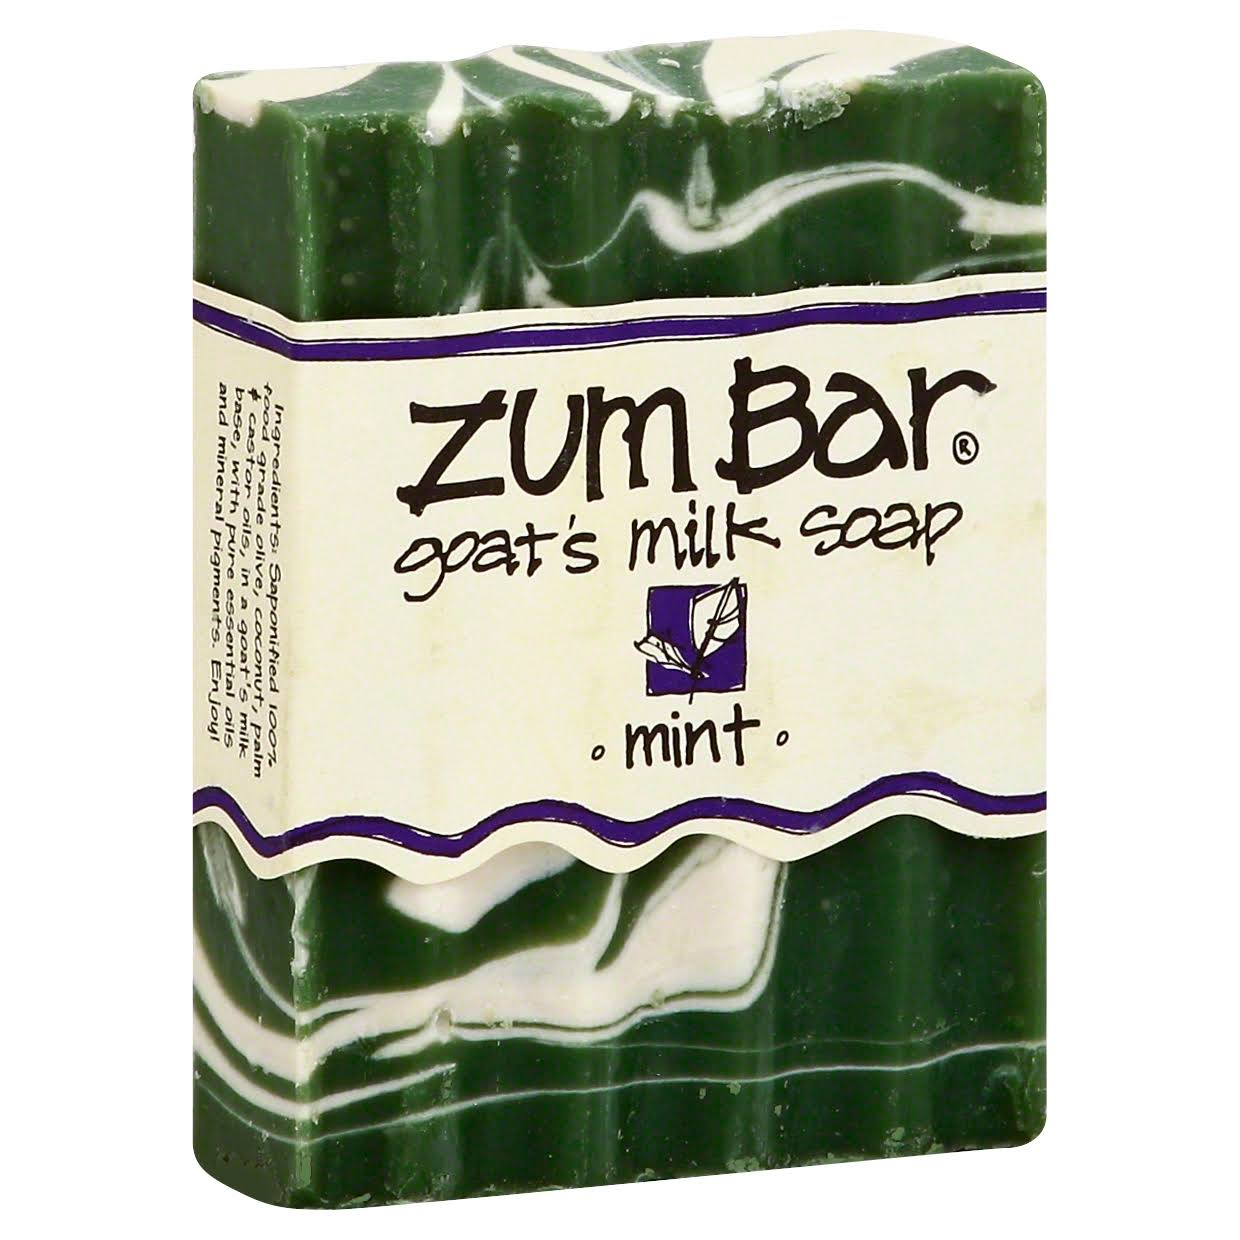 Zum Bar Soap, Goat's Milk, Mint - 3 oz